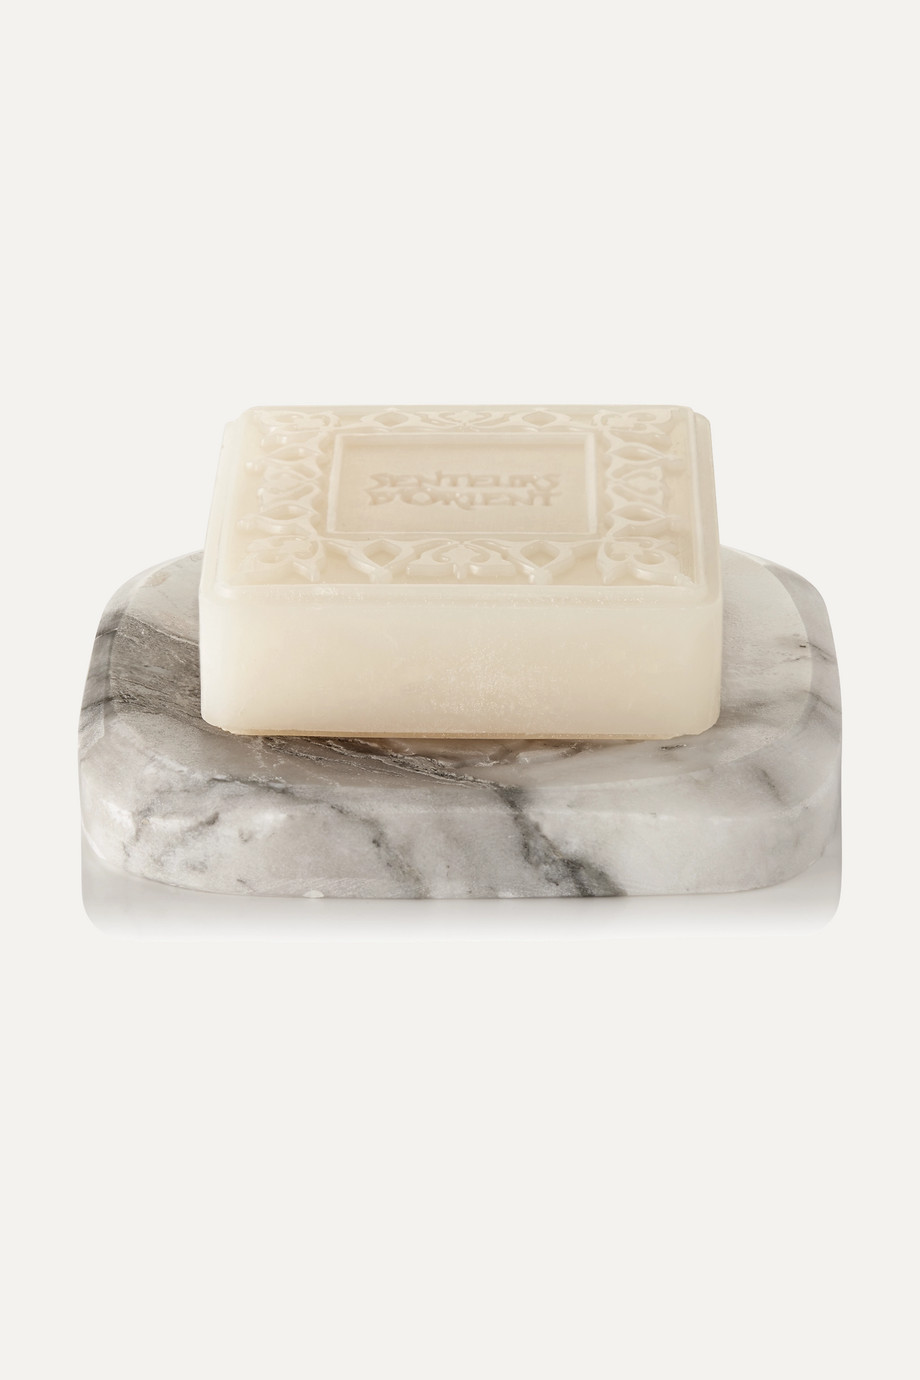 SENTEURS D'ORIENT + NET SUSTAIN Orange Blossom Ma'amoul Soap with Marble Dish, 305g